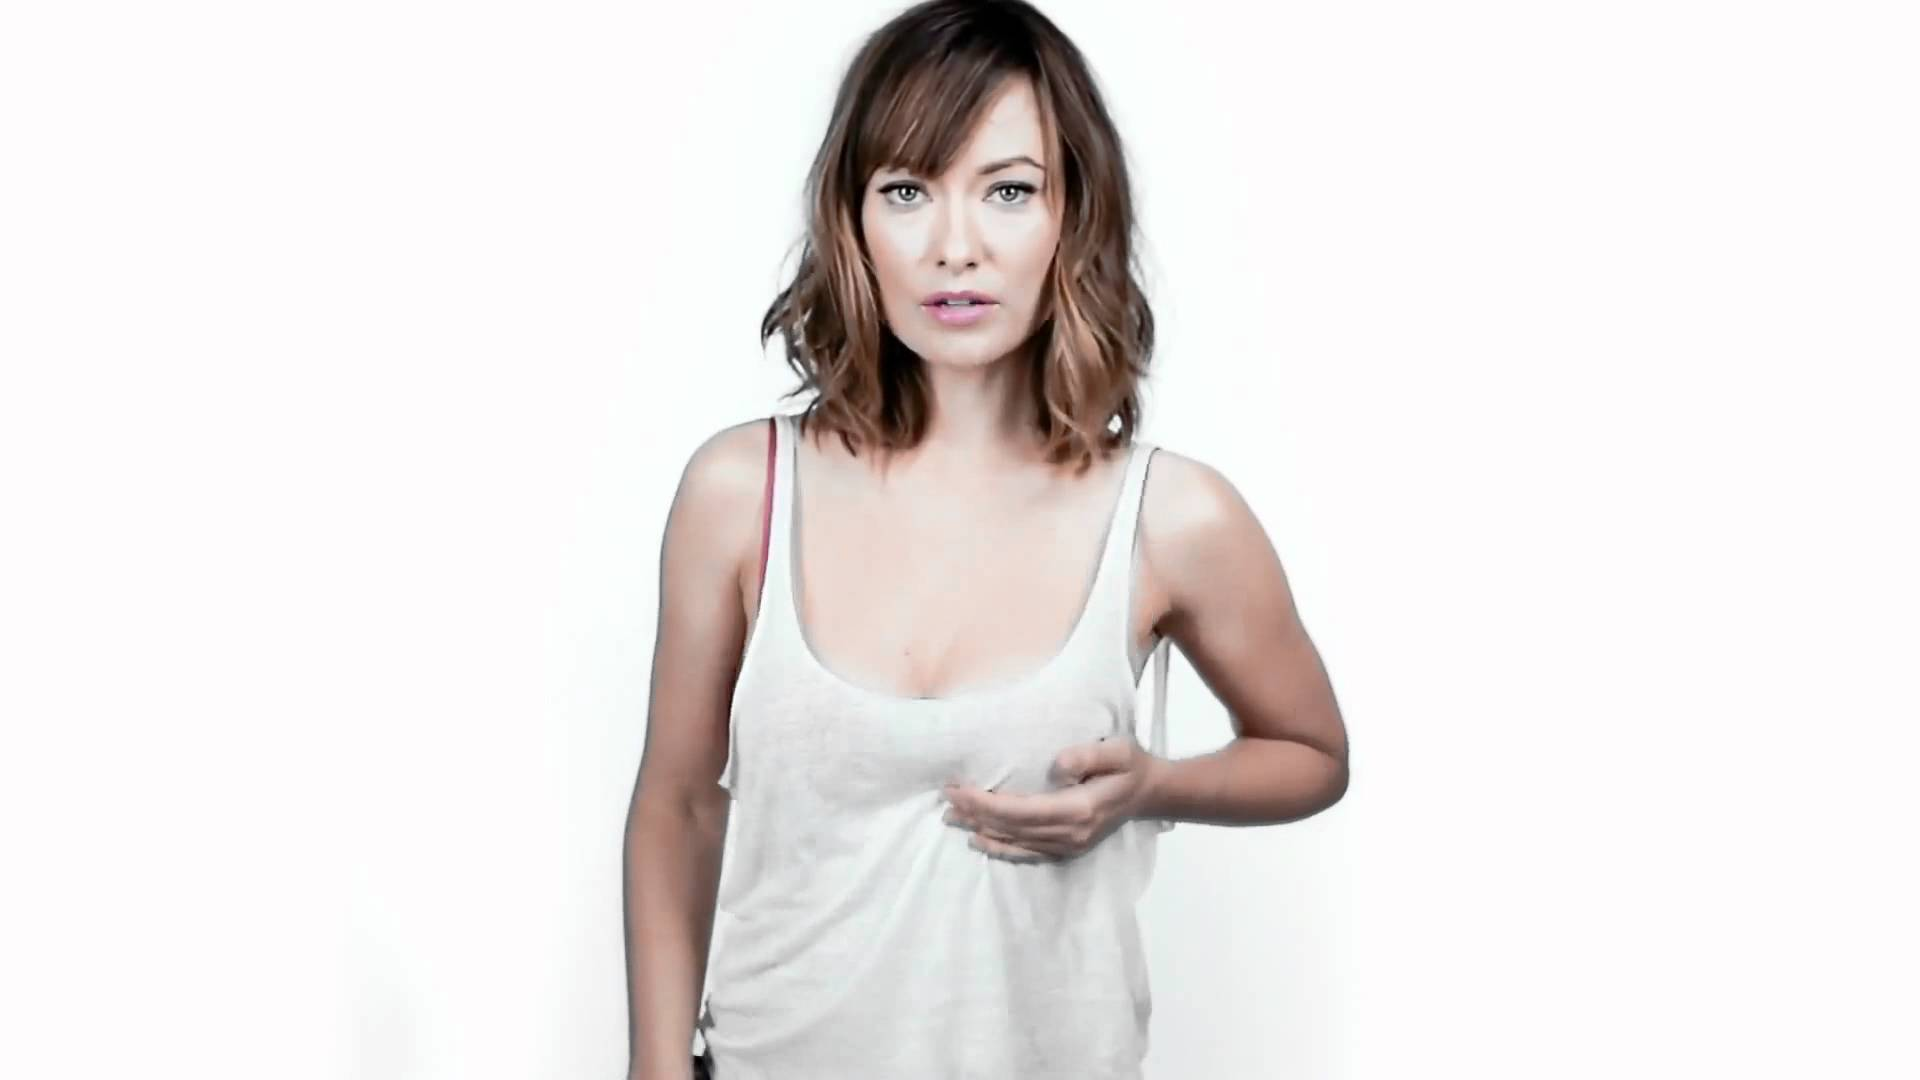 Tits Olivia Wilde nudes (93 photos), Ass, Cleavage, Instagram, bra 2015